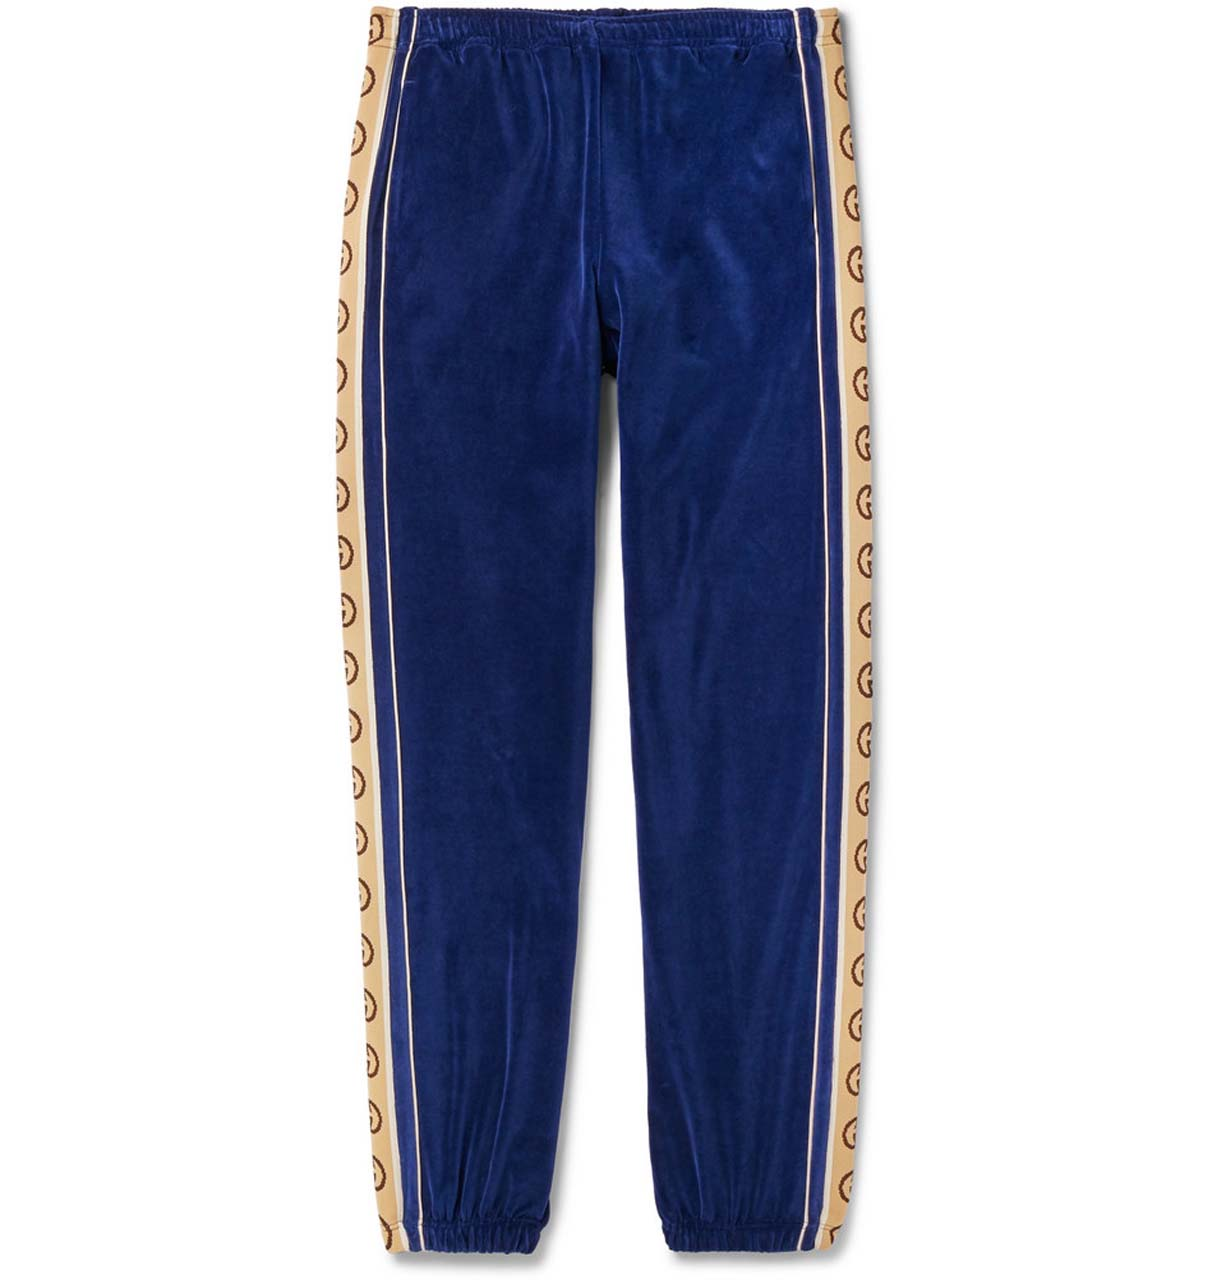 Gucci Tapered Logo-Appliquéd Webbing-Trimmed Piped Velvet Sweatpants